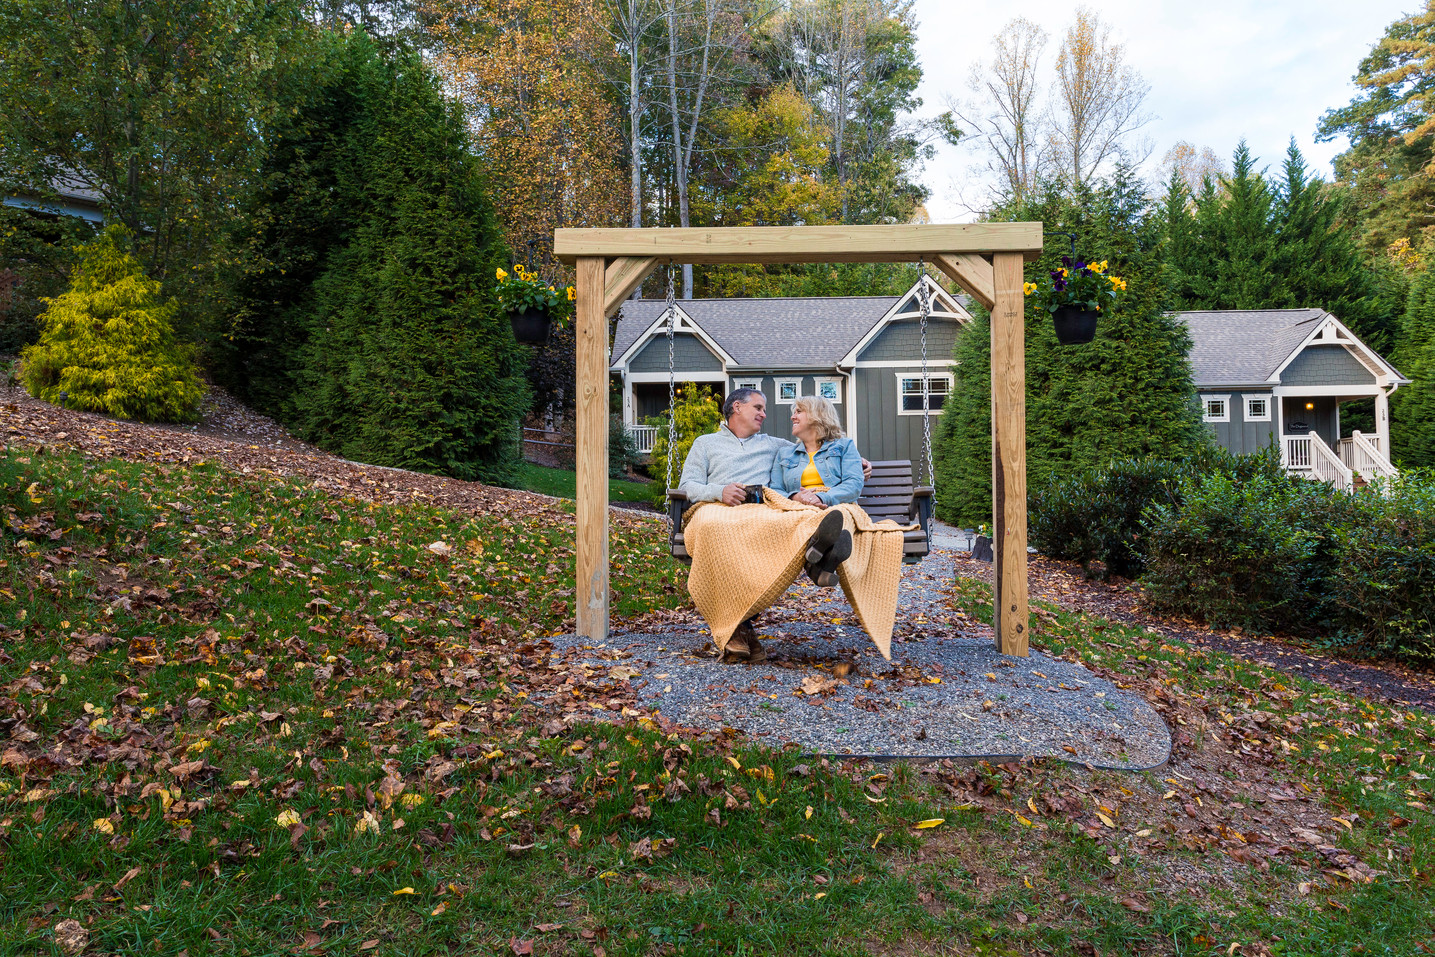 A romantic outdoor swing